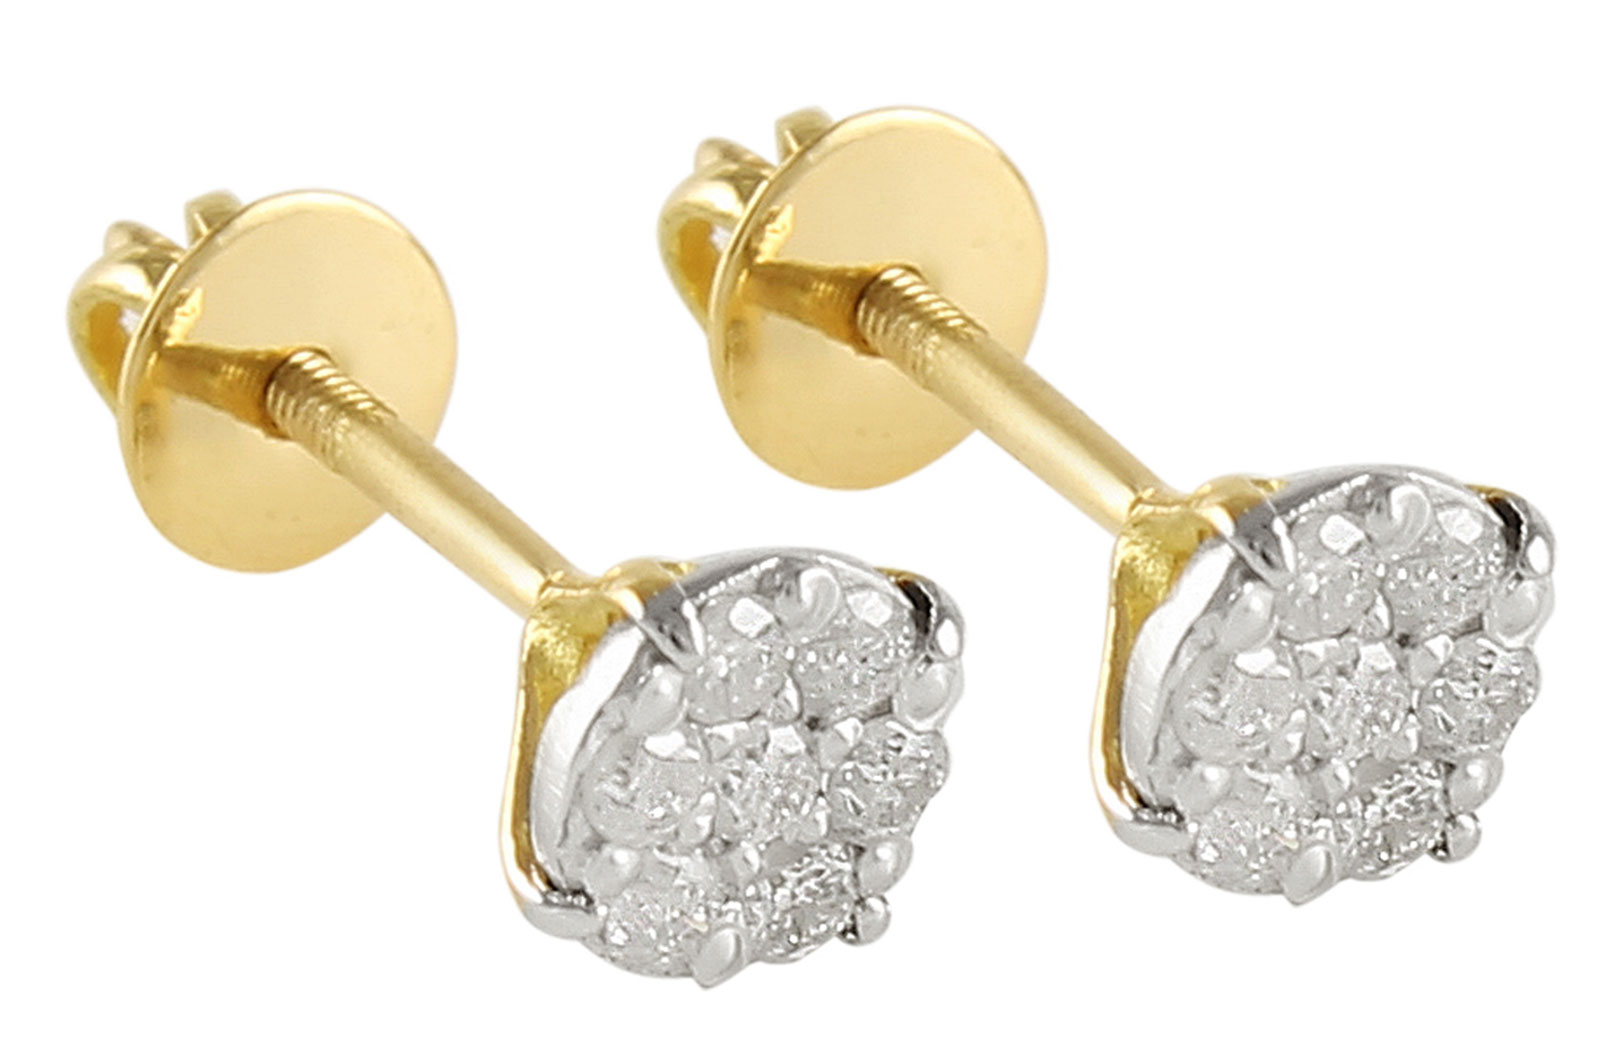 Vera Perla 18K Solid Gold and 0.14Cts Genuine Diamonds Solitaire Screw Back Earrings